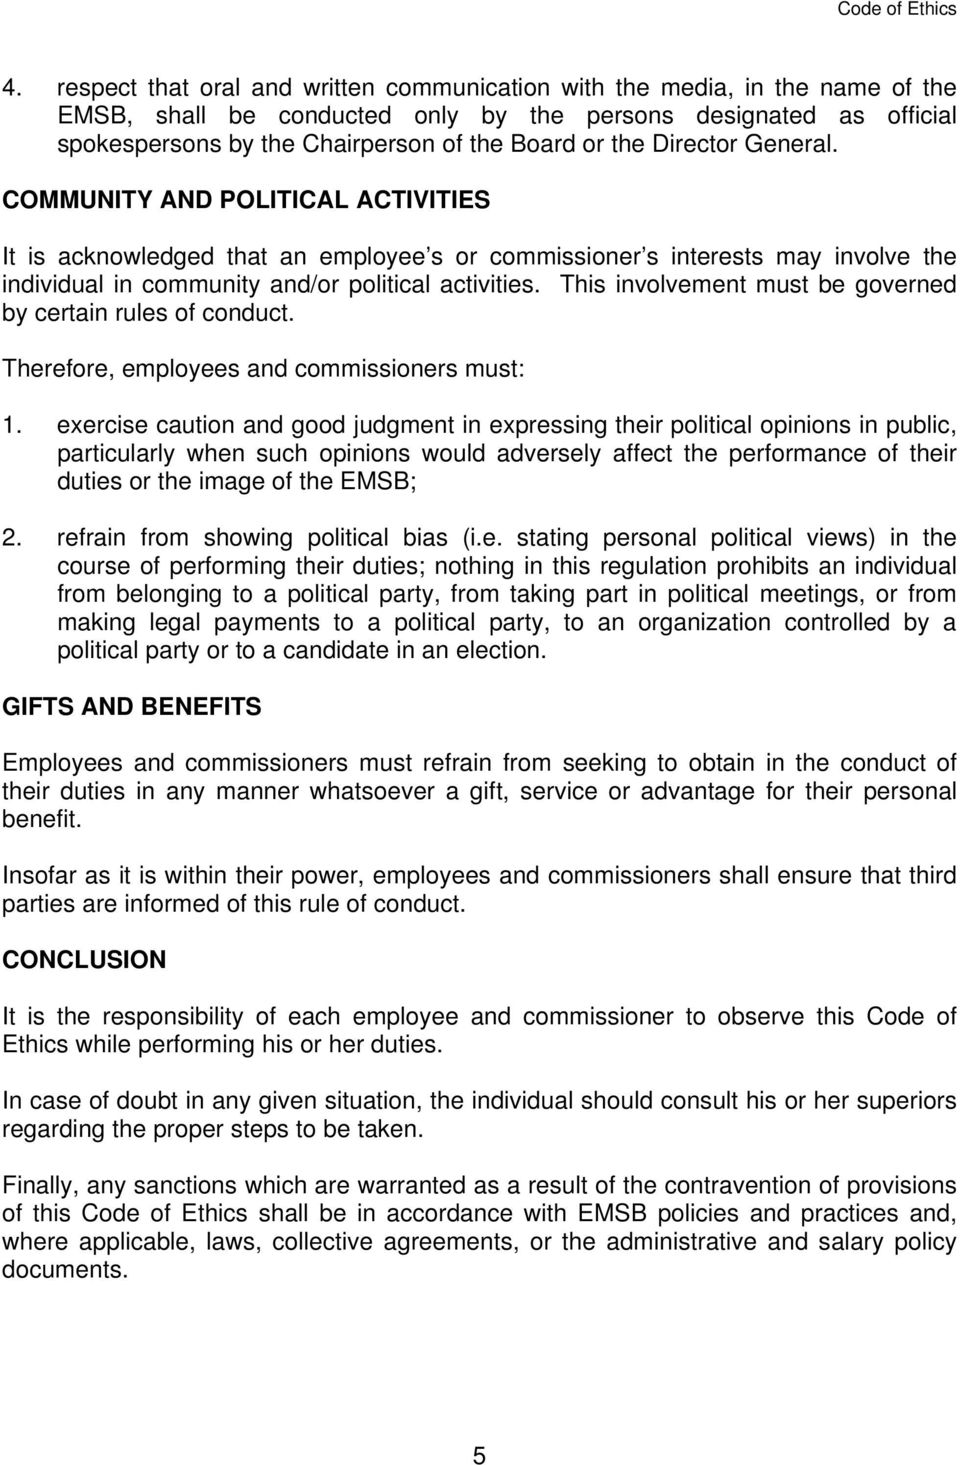 This involvement must be governed by certain rules of conduct. Therefore, employees and commissioners must: 1.